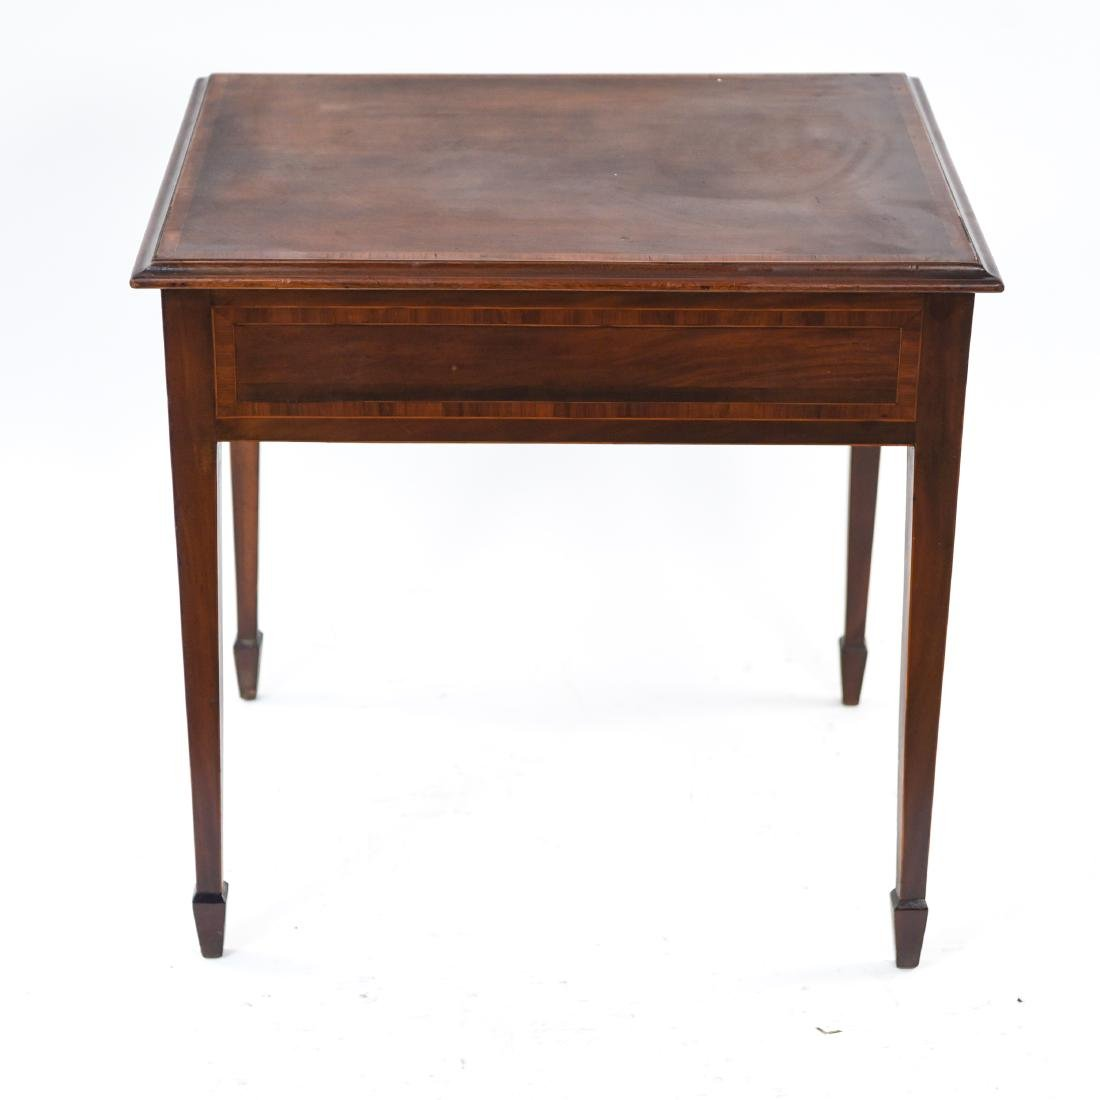 ANTIQUE ONE DRAWER SIDE TABLE - 10